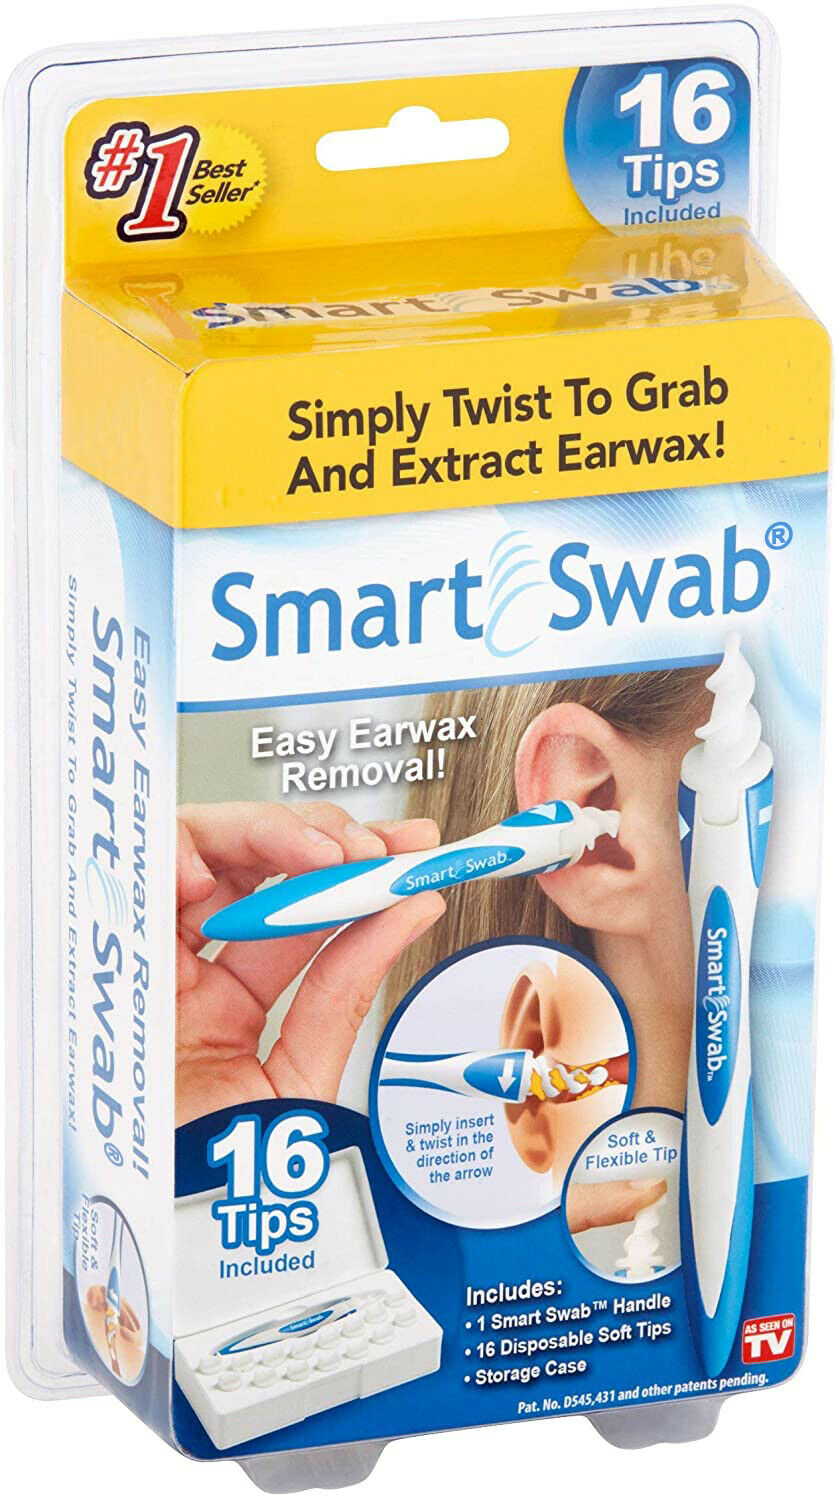 SMART SWAB Spiral Ear Cleaner Easy Ear wax Removal Remover 1